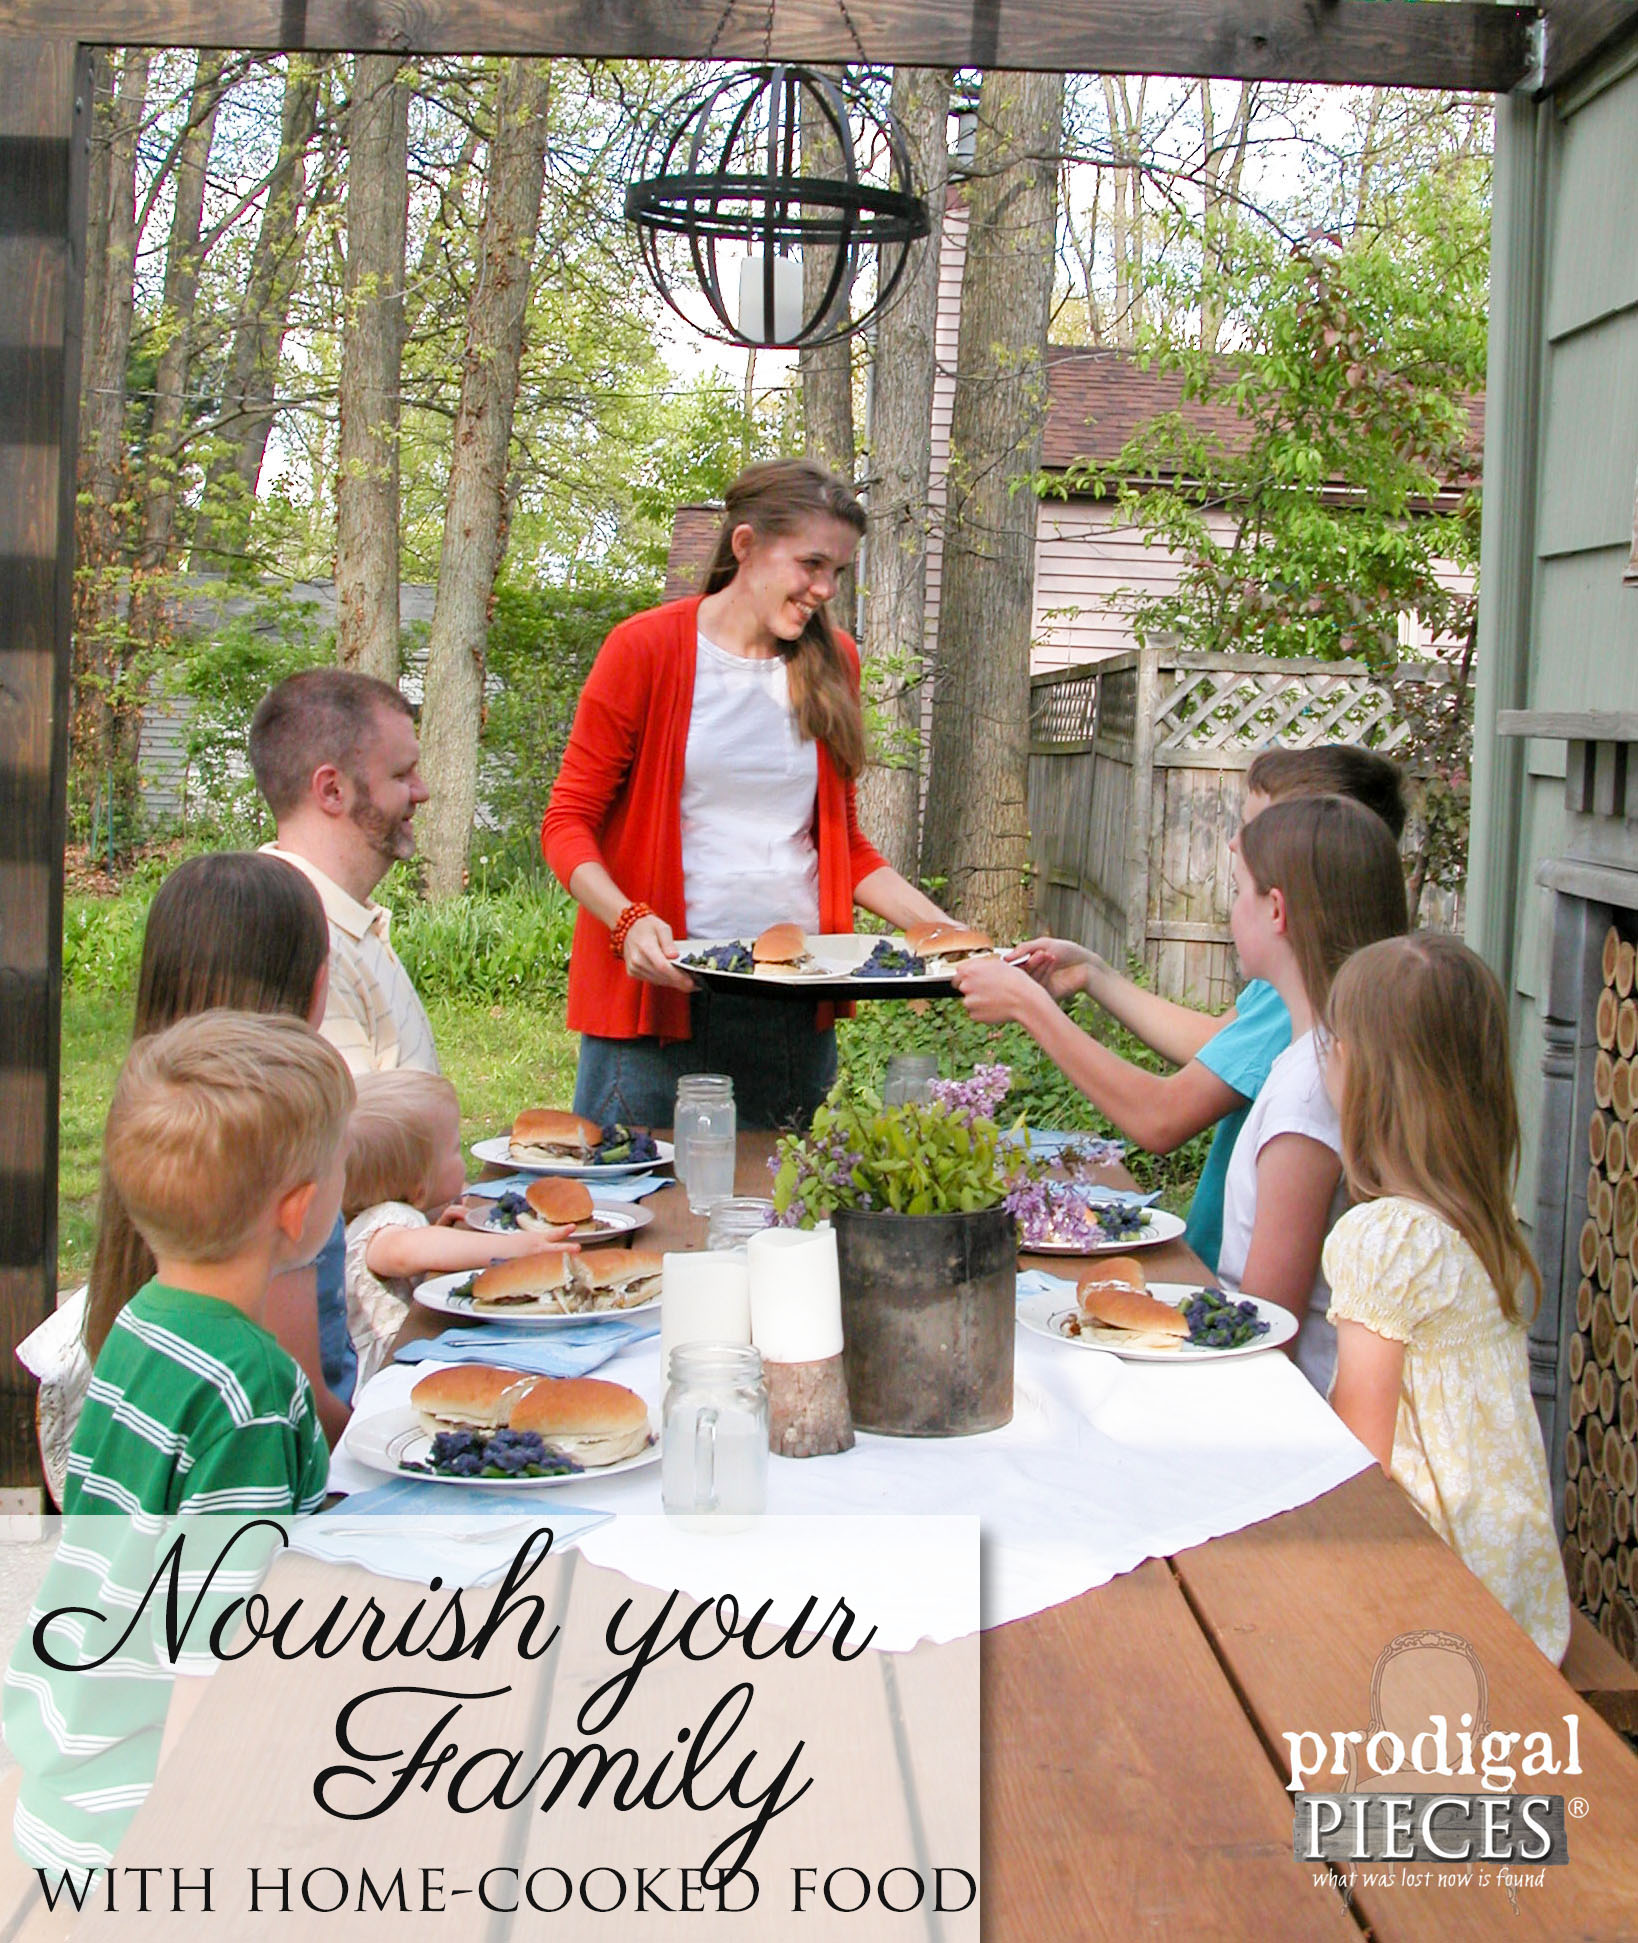 How to Nourish Your Family with Home-Cooked Food by Prodigal Pieces | prodigalpieces.com